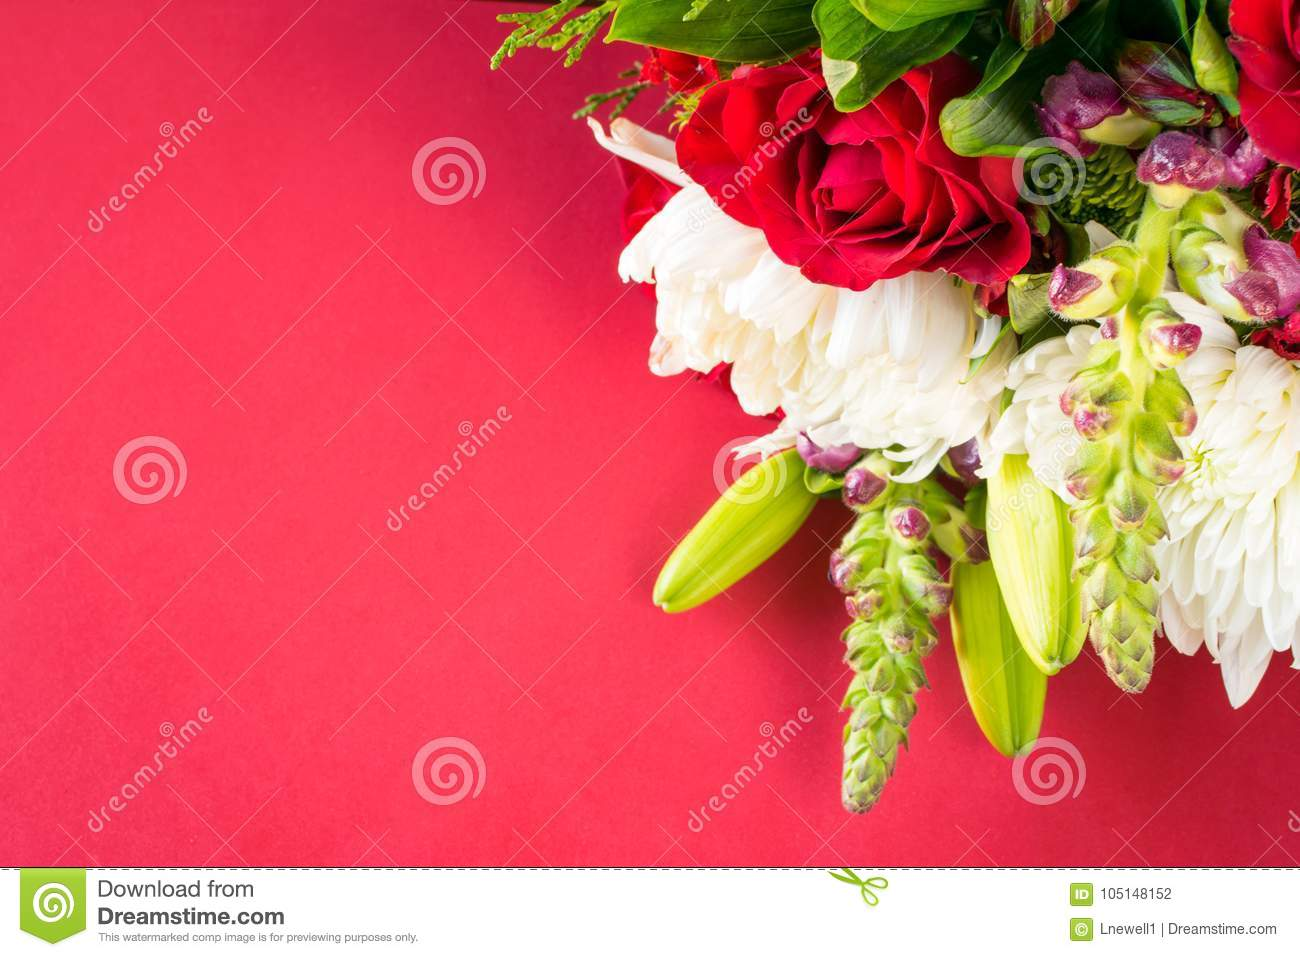 Flower bouquet on green background stock photo image of download flower bouquet on green background stock photo image of celebration fillers 105148152 izmirmasajfo